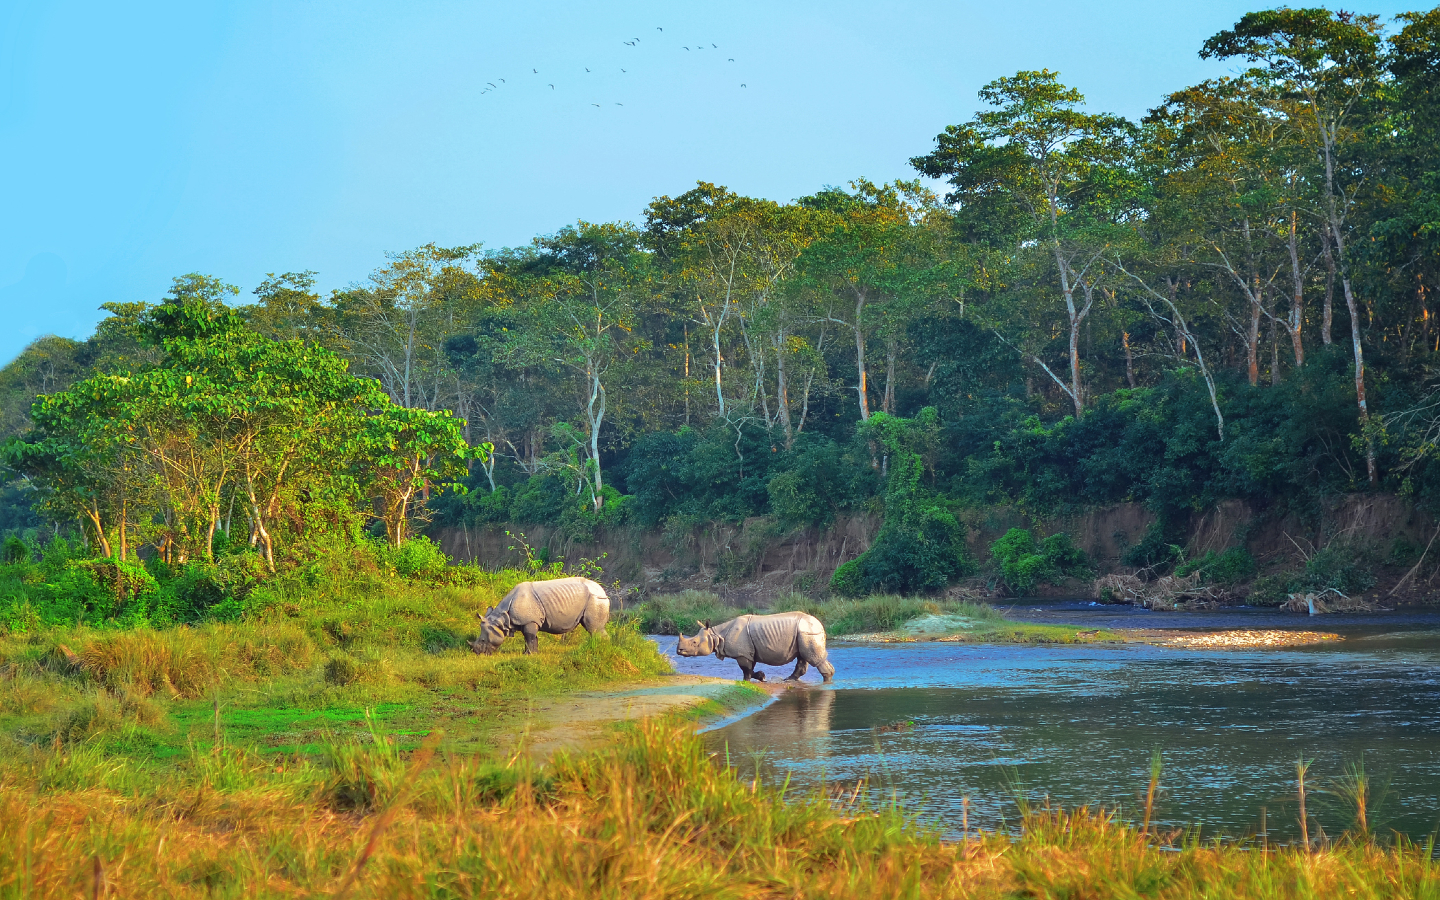 Tiere im Chitwan Nationalpark in Nepal.